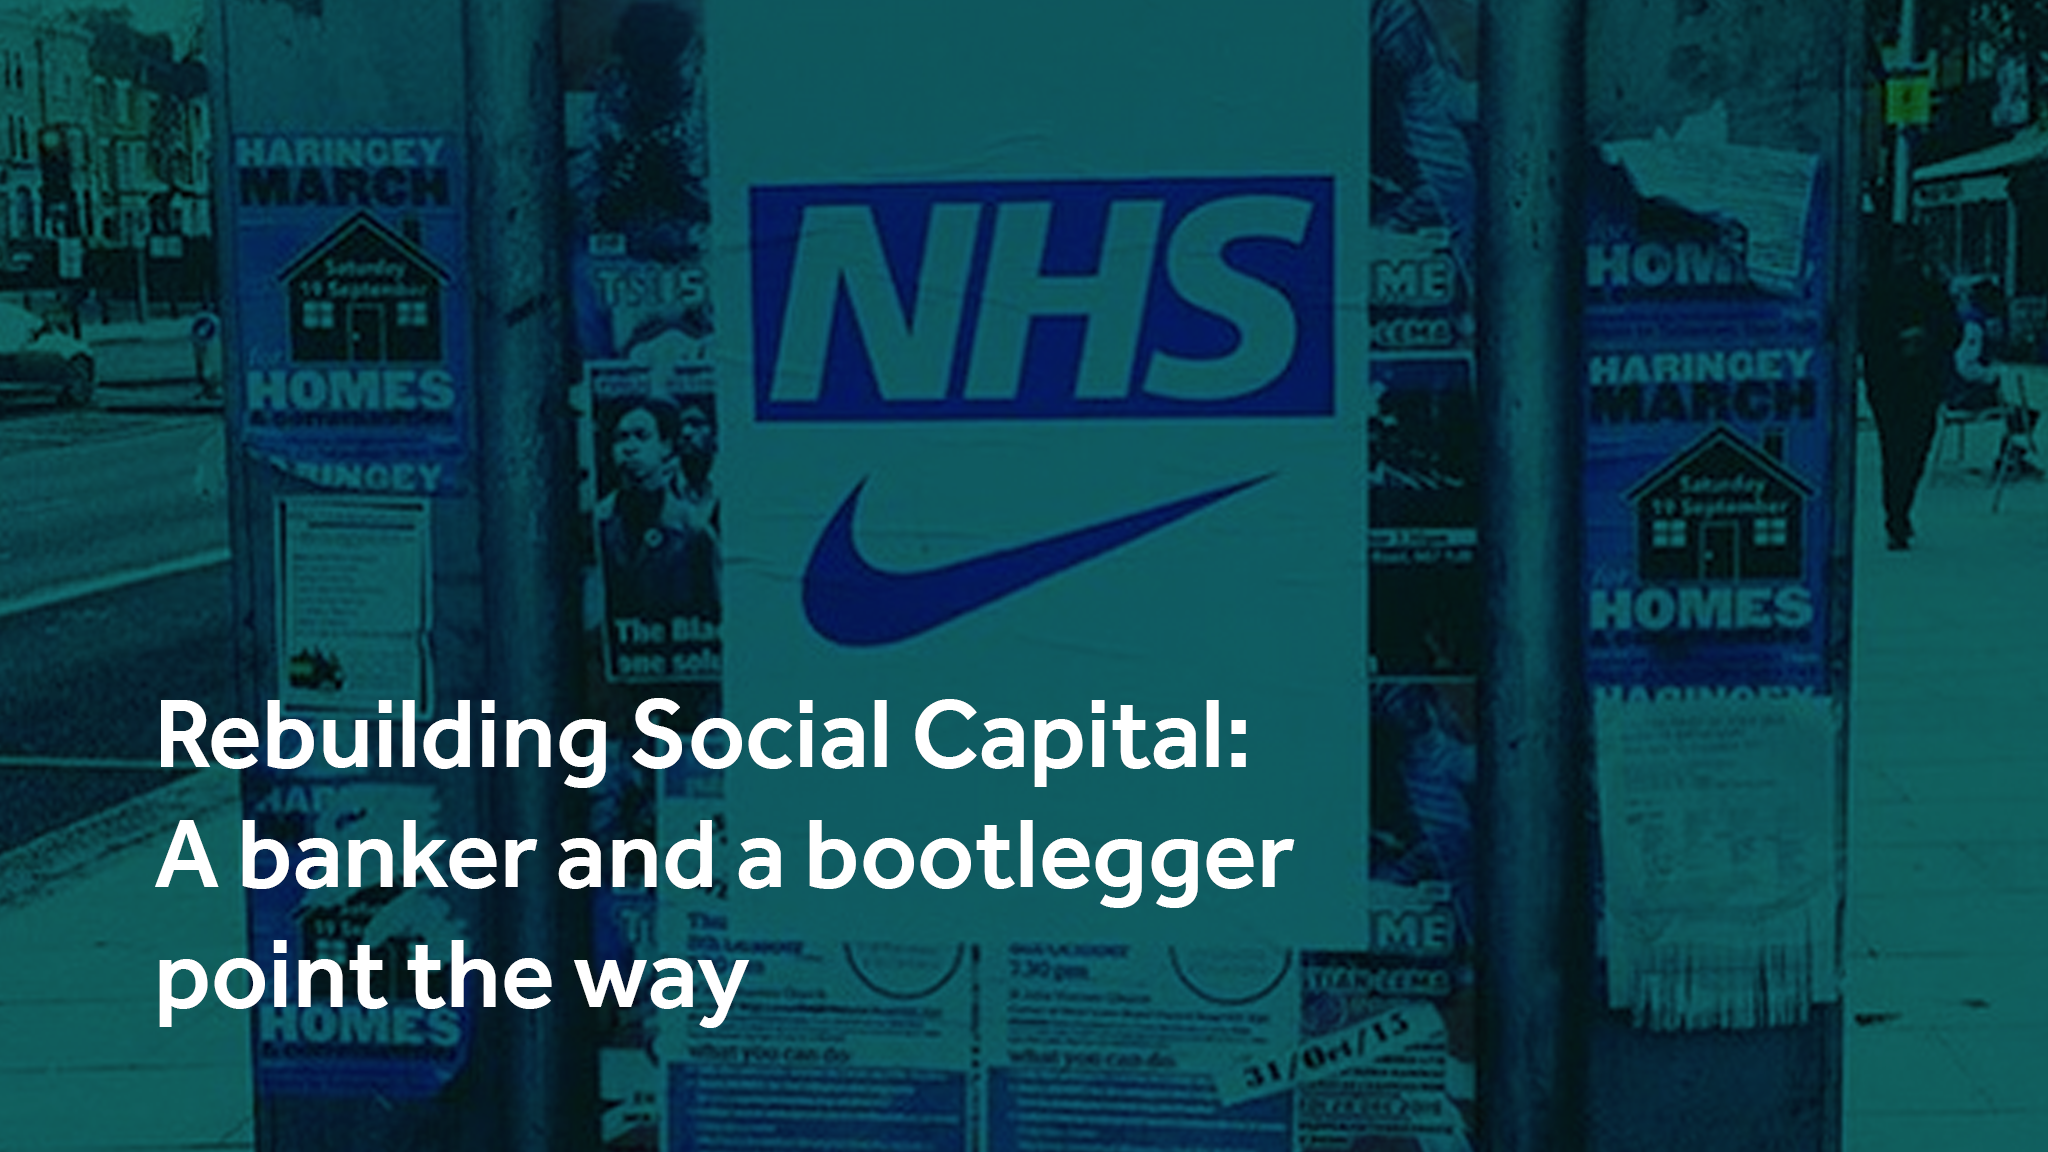 Rebuilding Social Capital: A Banker and Bootlegger Point The Way